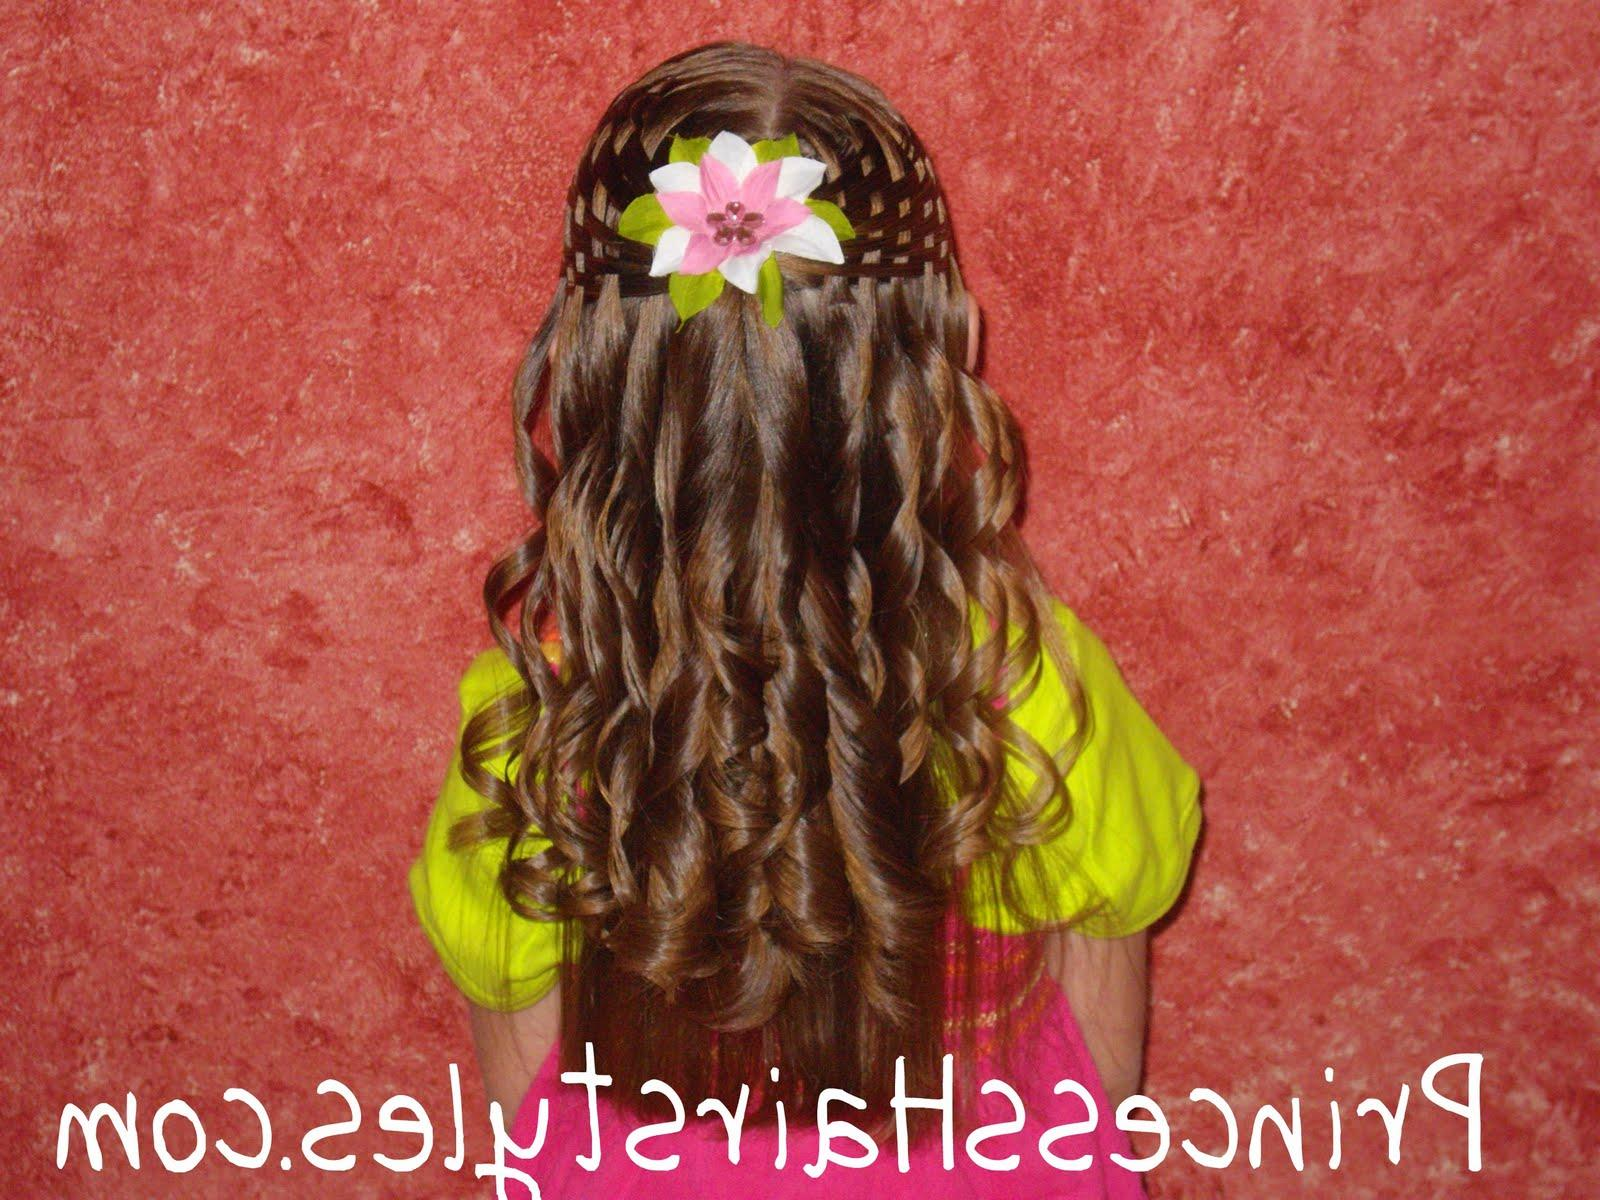 When we do this hairstyle,